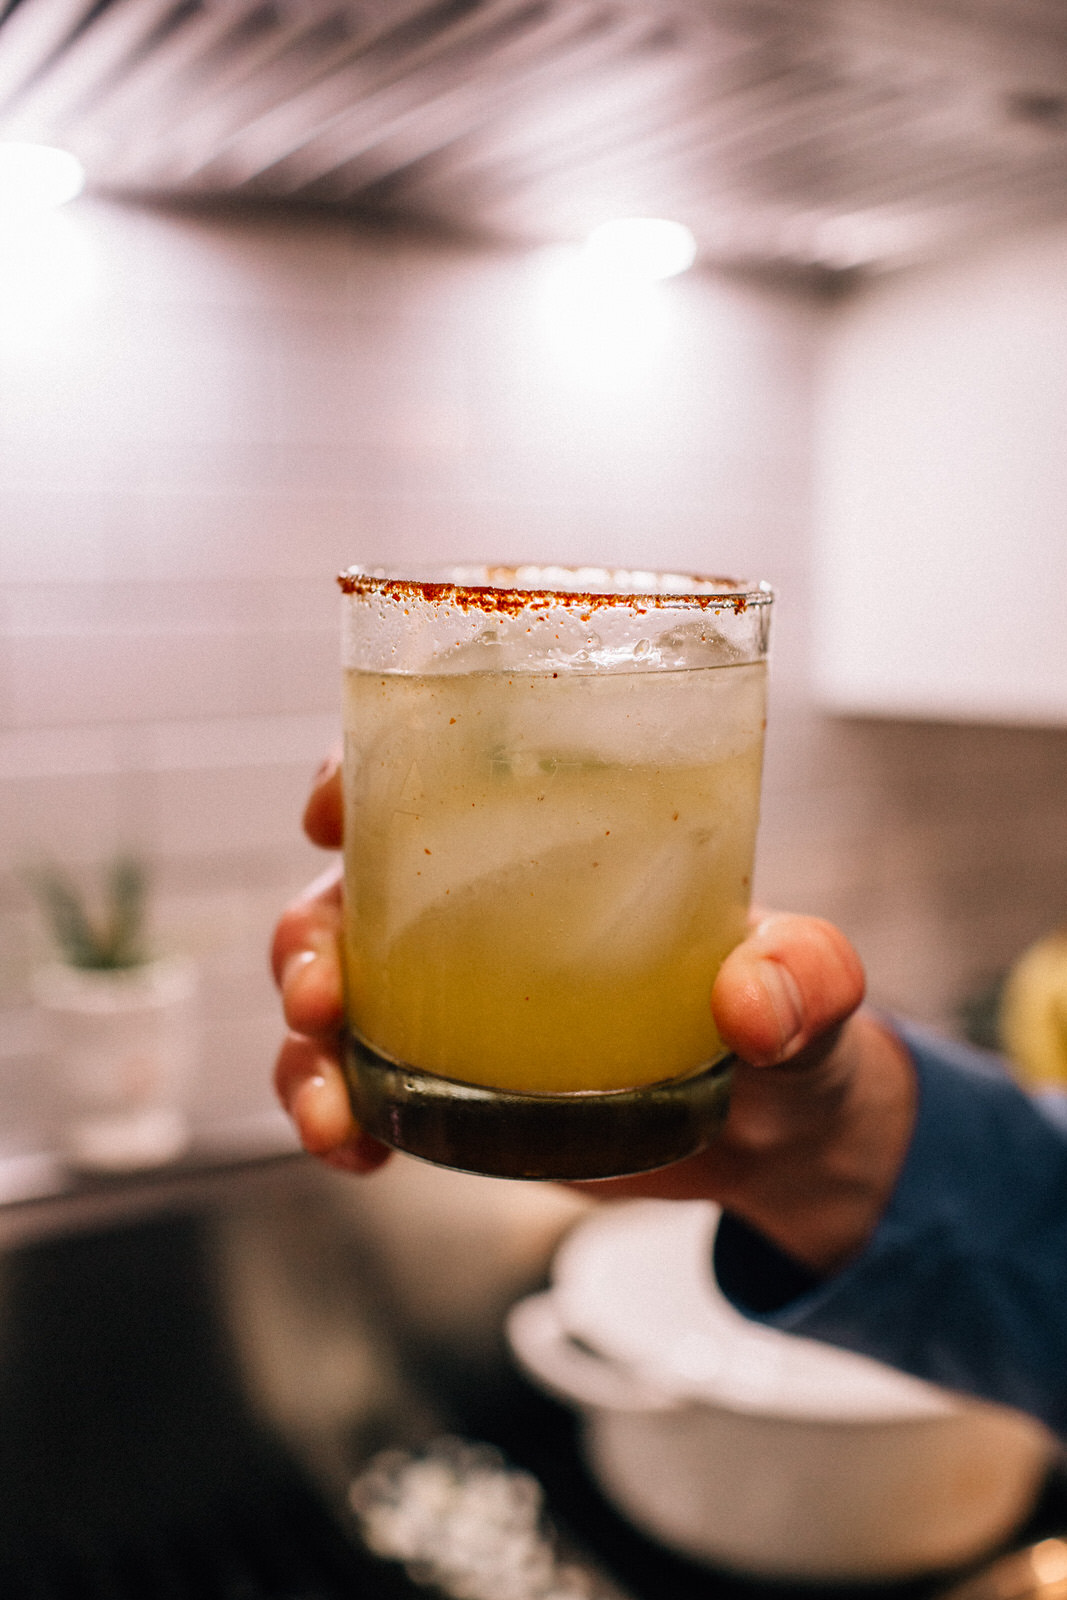 easy skinny margarita recipe that doesnt use margarita mix salt on rim of glass